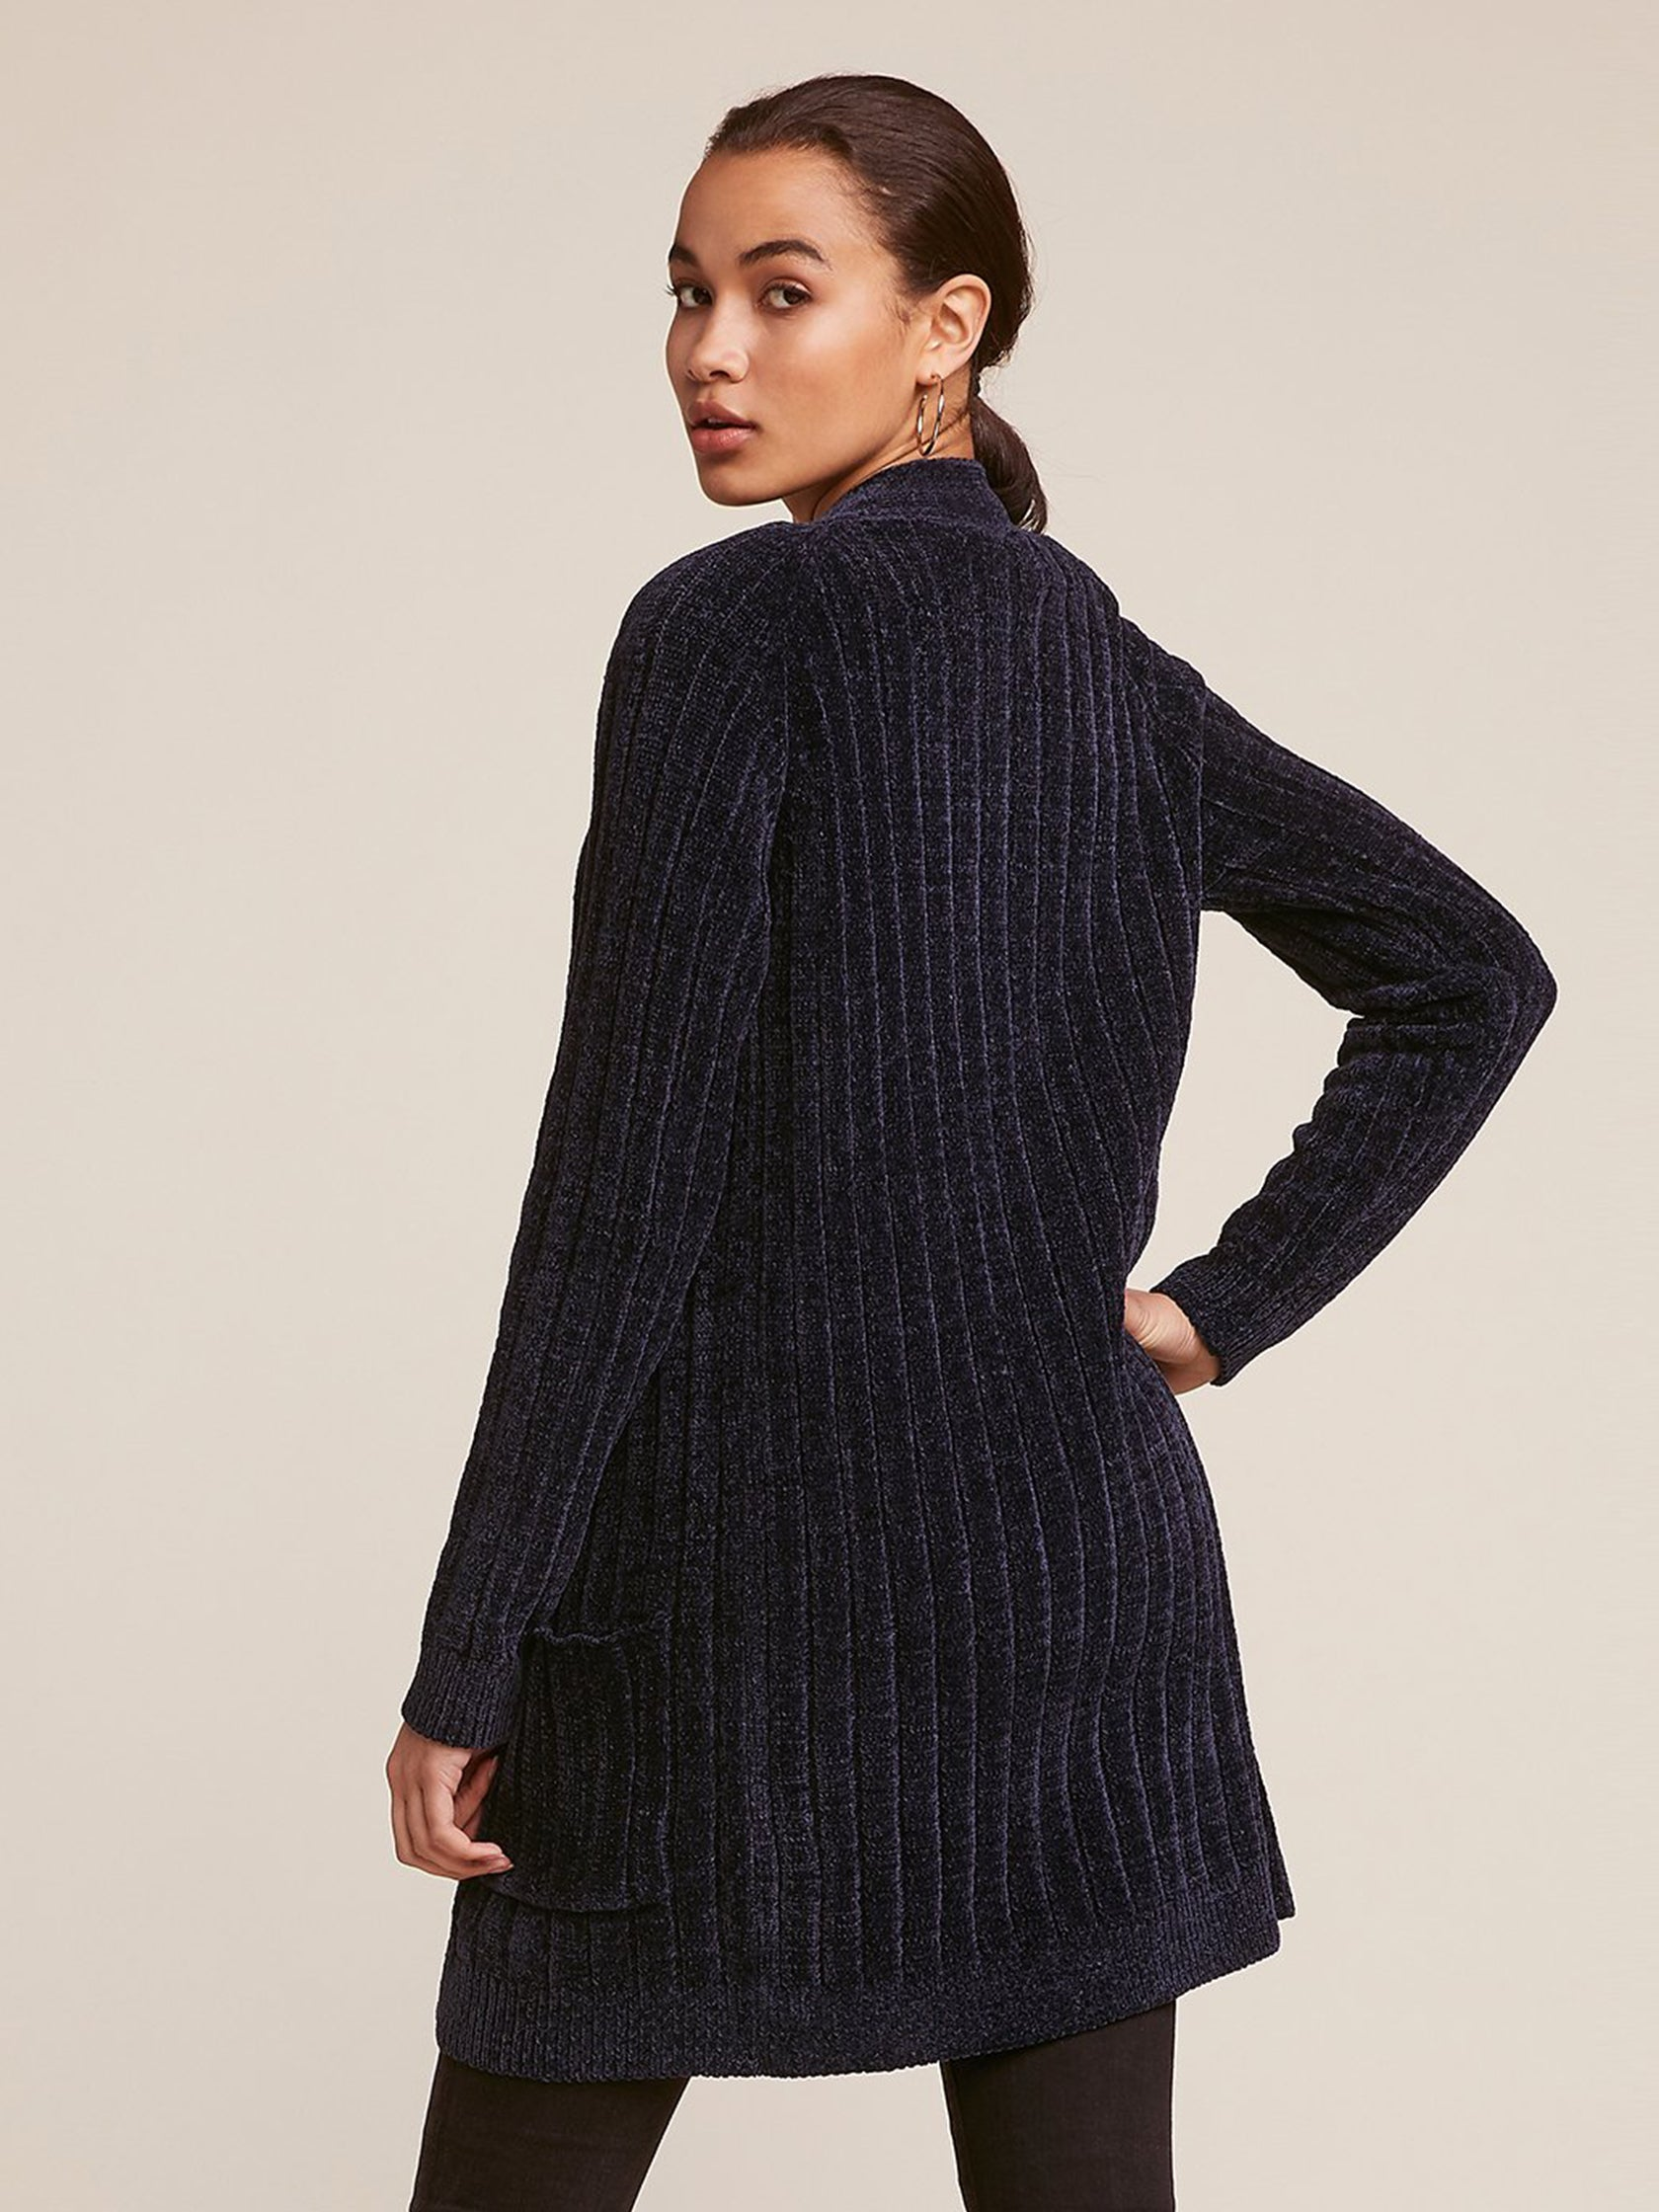 Women wearing a cardigan rental from BB Dakota called Favorite Game Knee Length Cardigan